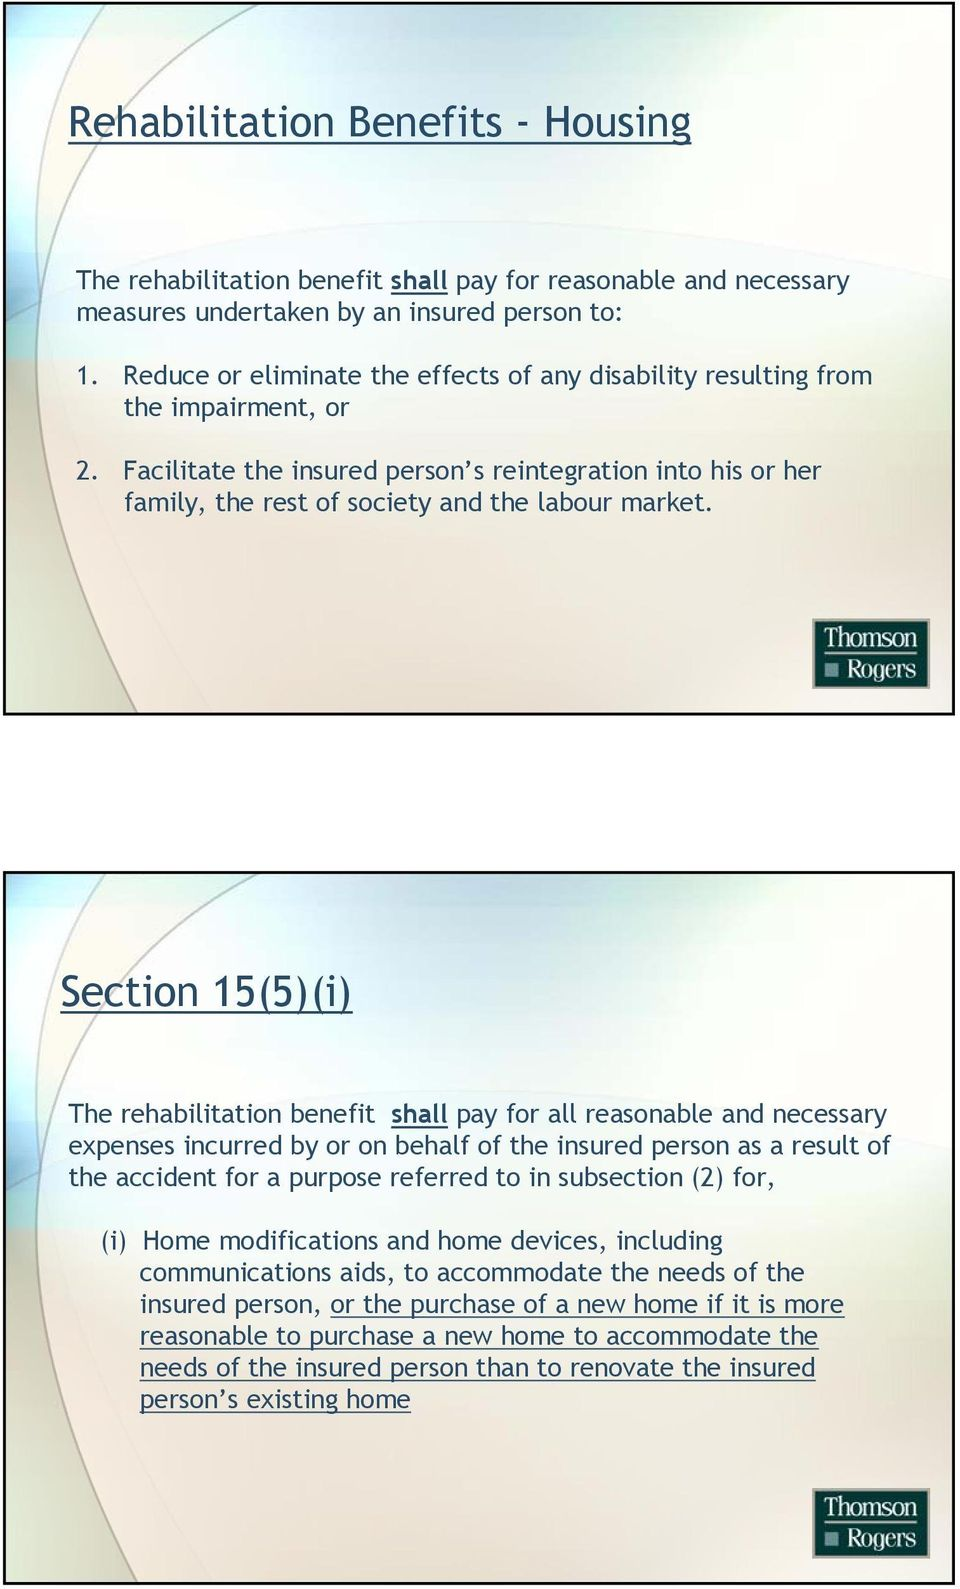 Section 15(5)(i) The rehabilitation benefit shall pay for all reasonable and necessary expenses incurred by or on behalf of the insured person as a result of the accident for a purpose referred to in